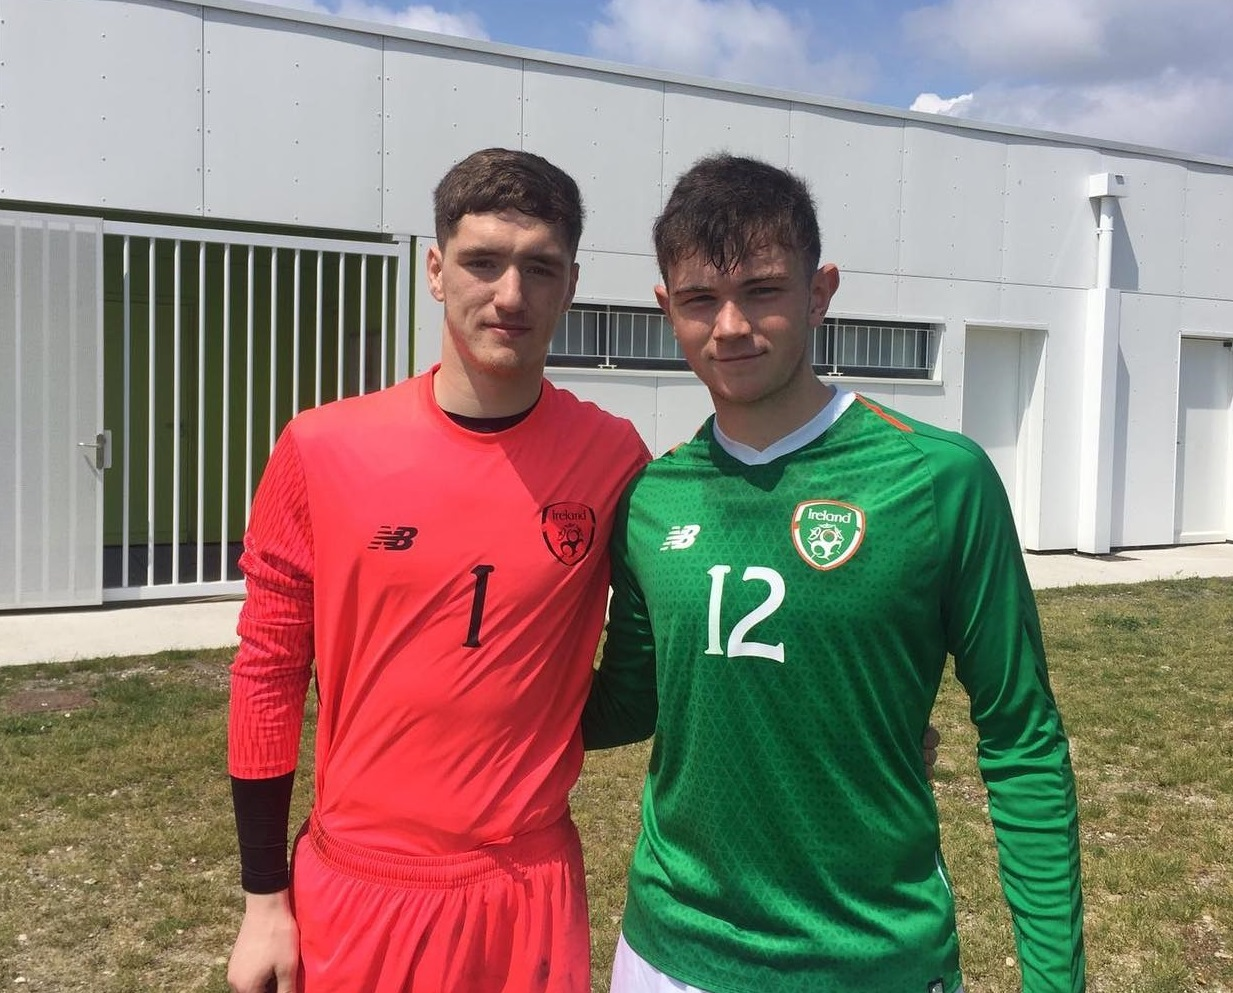 Paul Martin and Darryl Walsh in Bordeaux with the Colleges and Universities national team